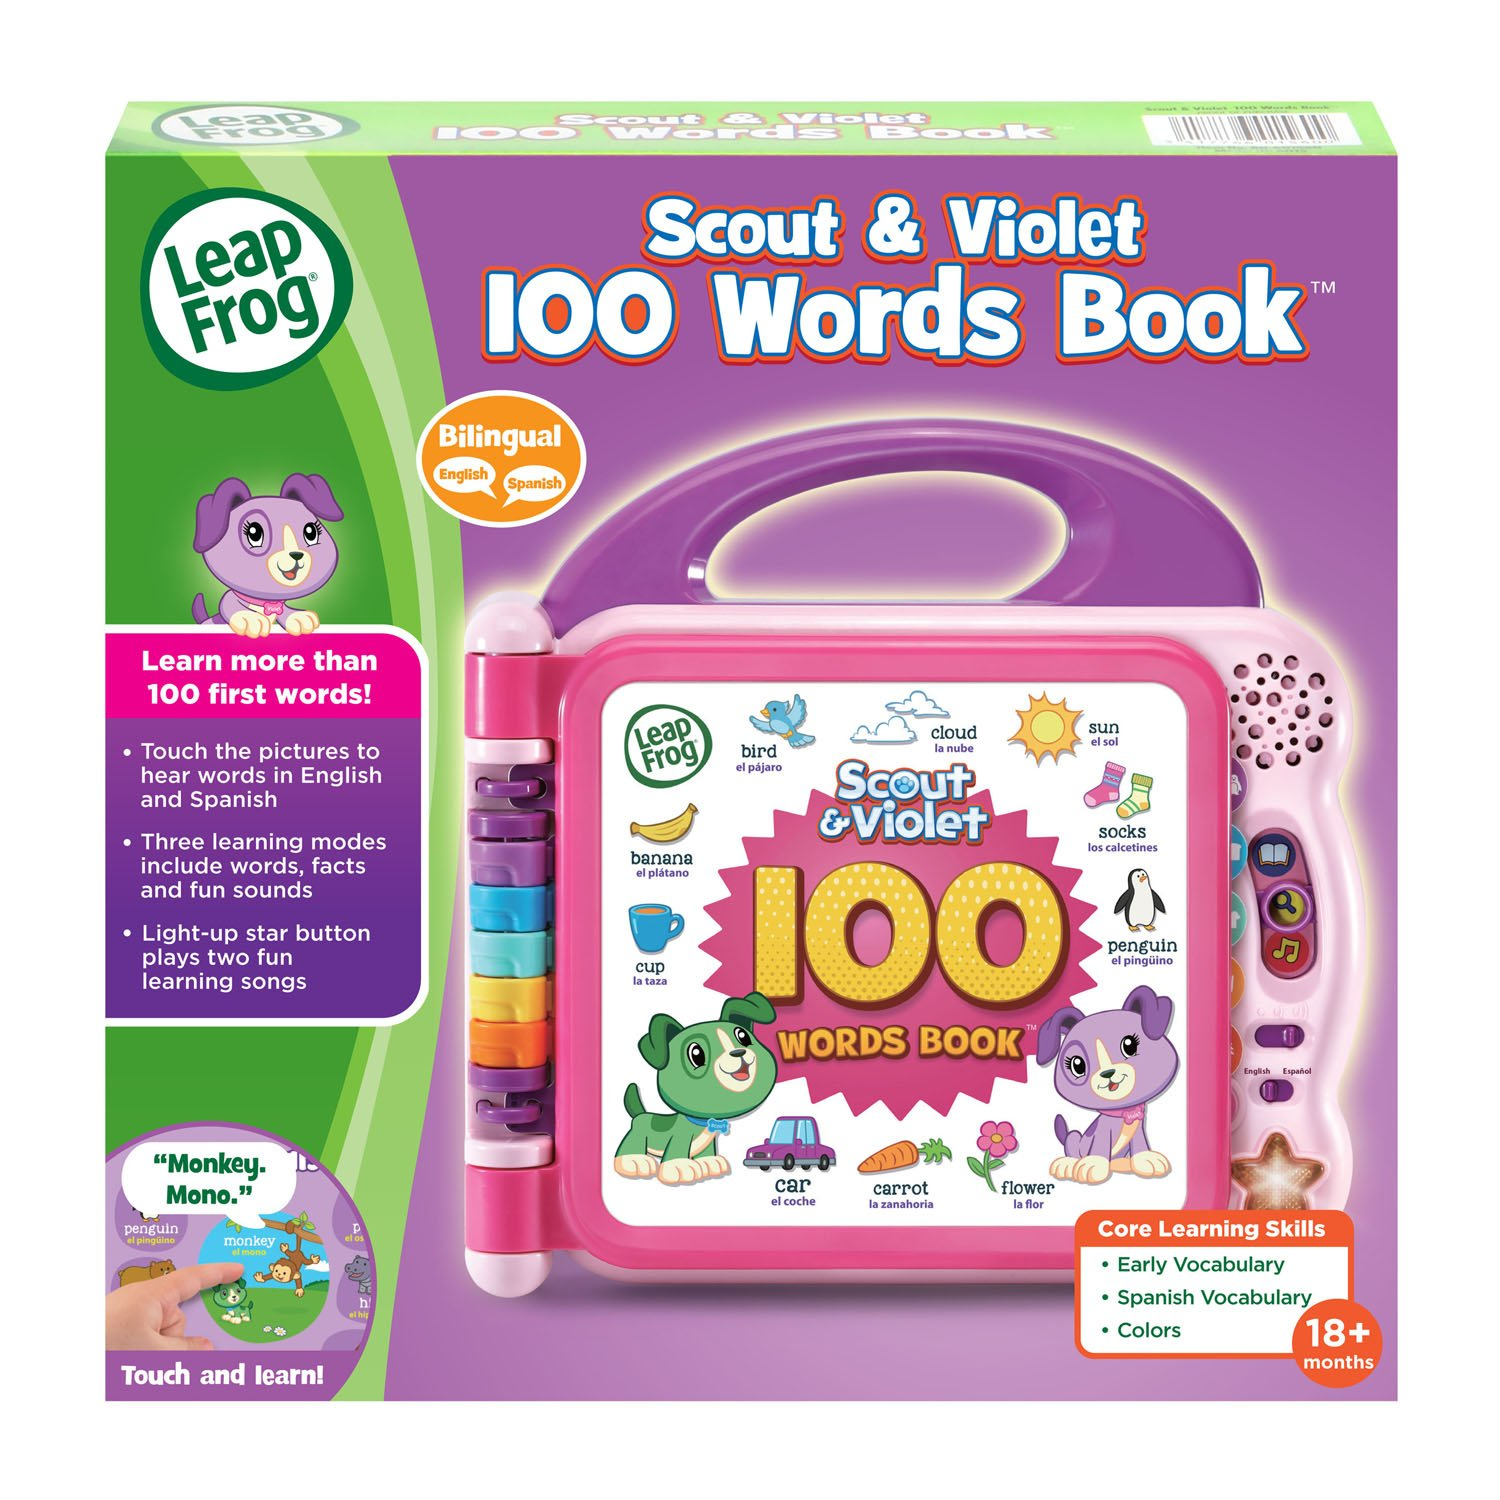 LeapFrog Scout and Violet 100 Words Book (Amazon Exclusive) by LeapFrog (Image #7)